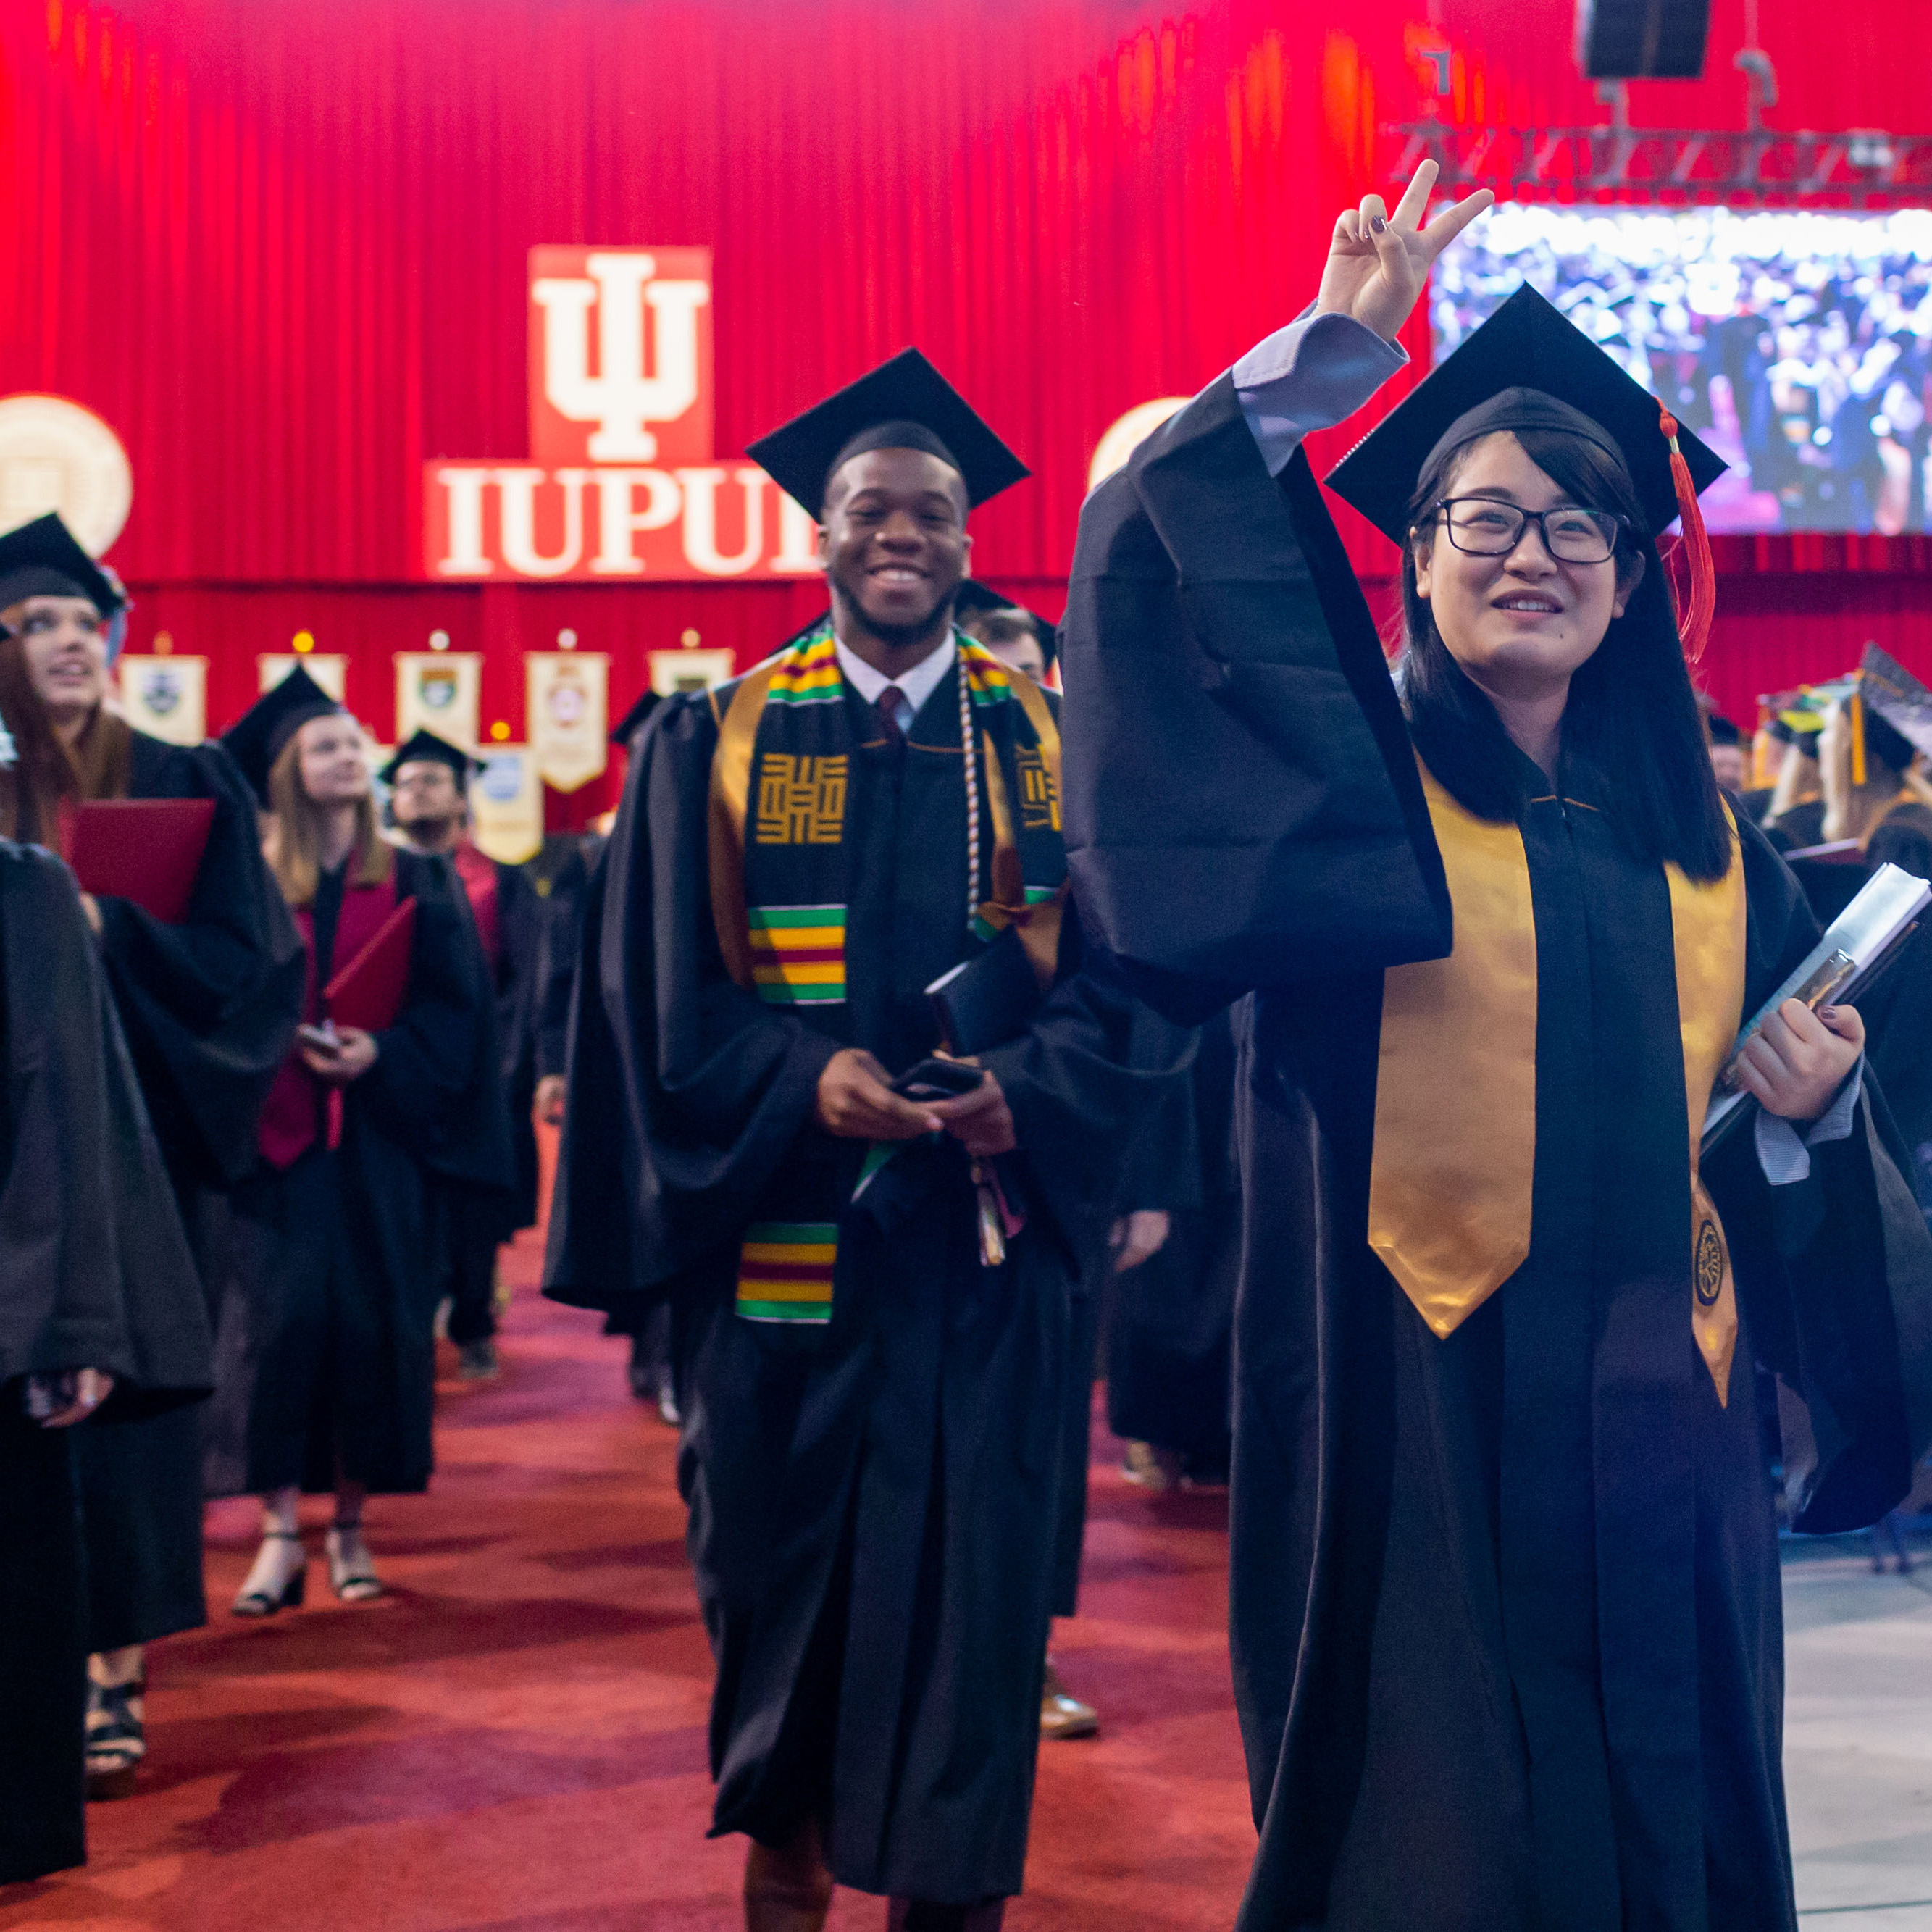 Students participating in IUPUI's commencement. The student in the forefront is female has a gold stole and black robes.